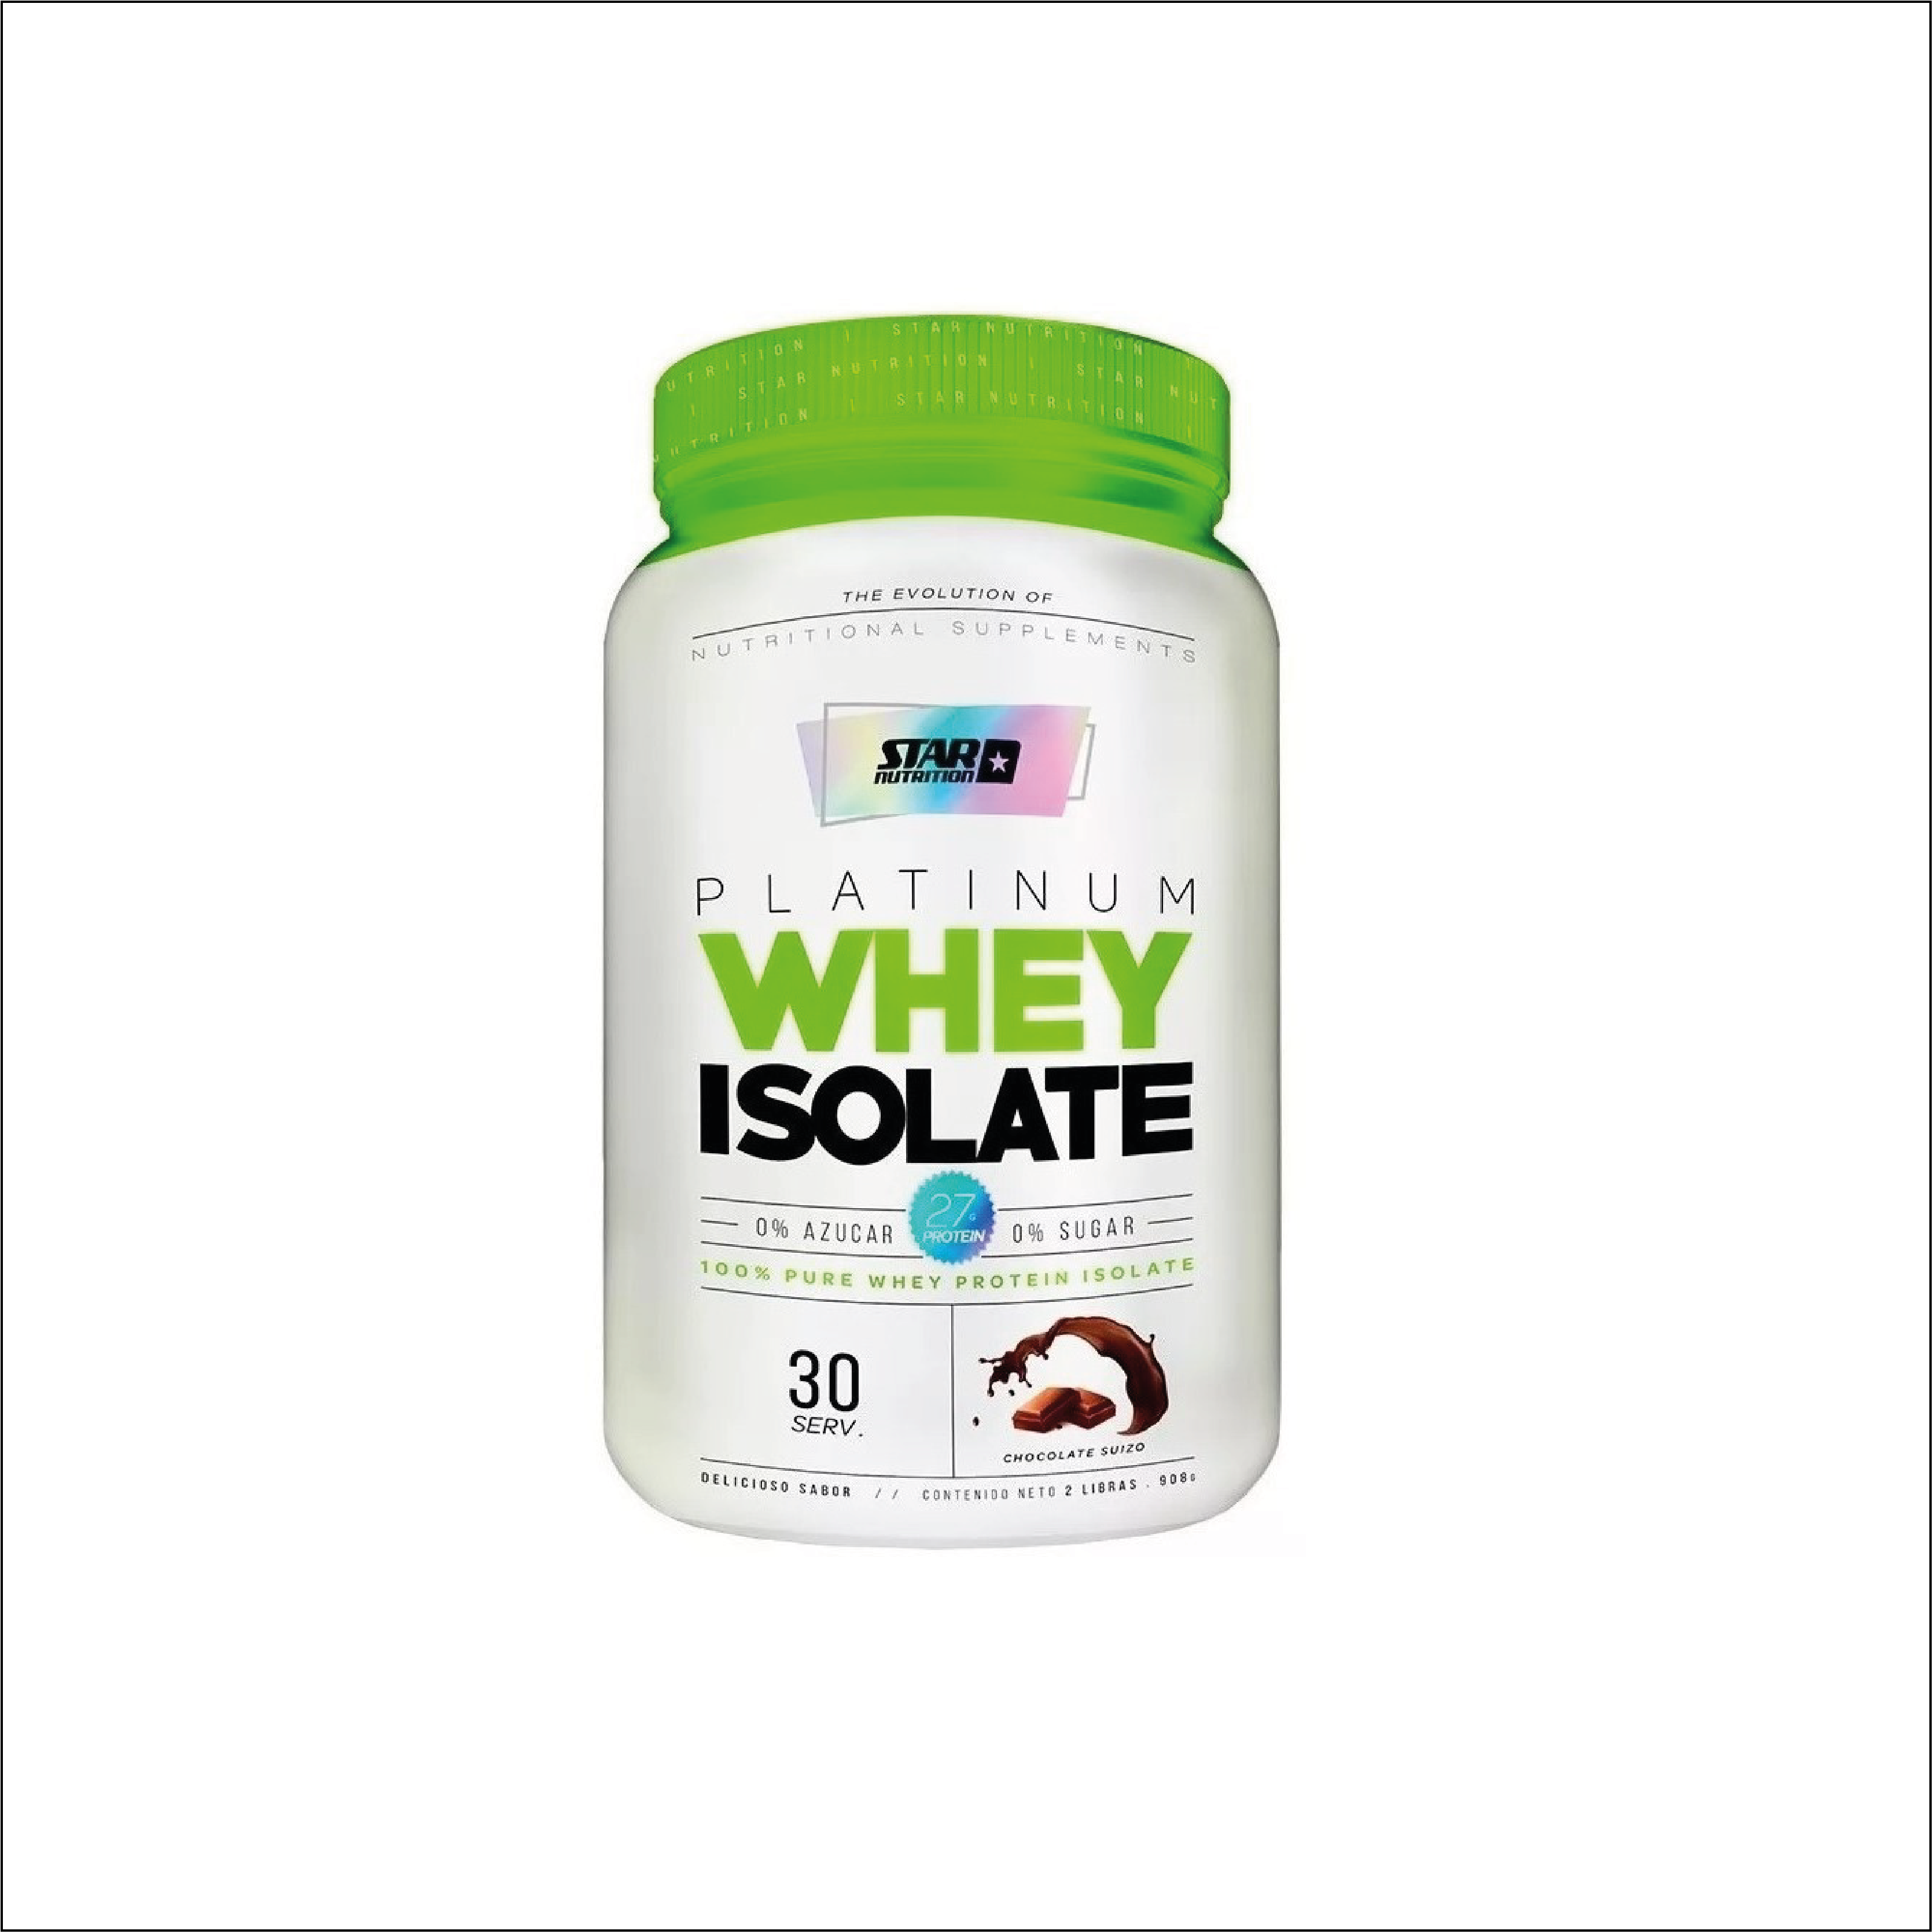 12 ISOLATE WHEY STAR NUTRITION